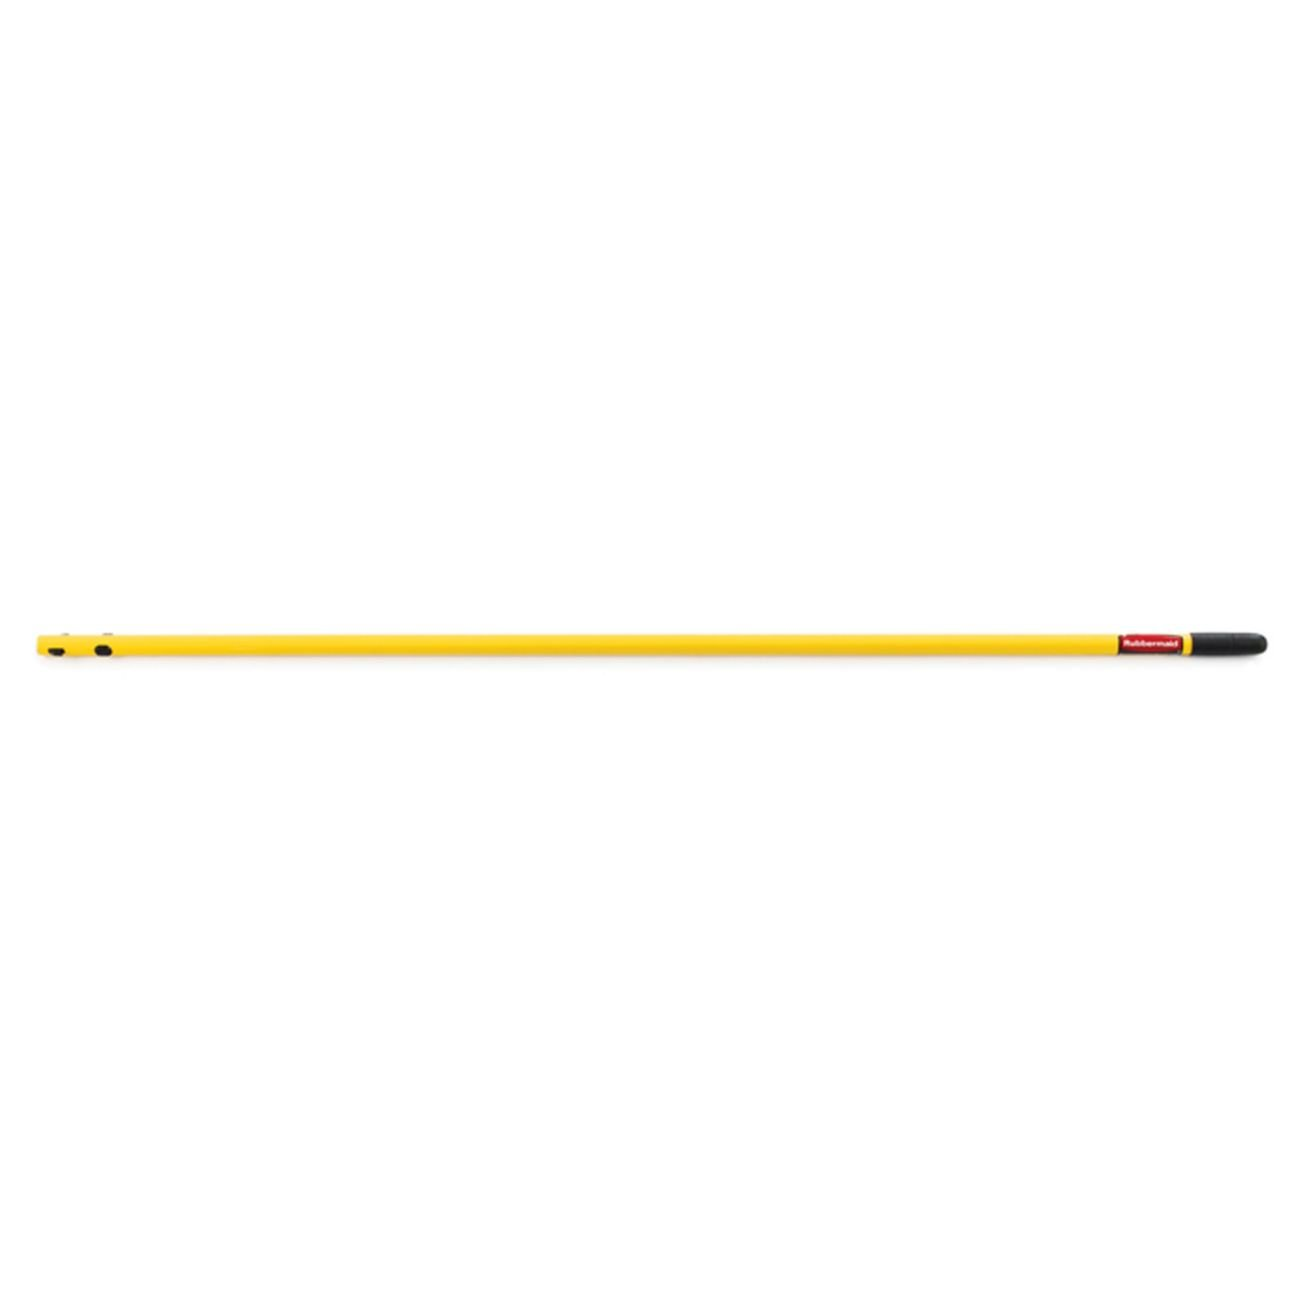 Rubbermaid Commercial 52 Inch Economy Quick-Connect Steel Handle, Yellow (FGQ74900YL00) (6-Pack) by Rubbermaid Commercial Products